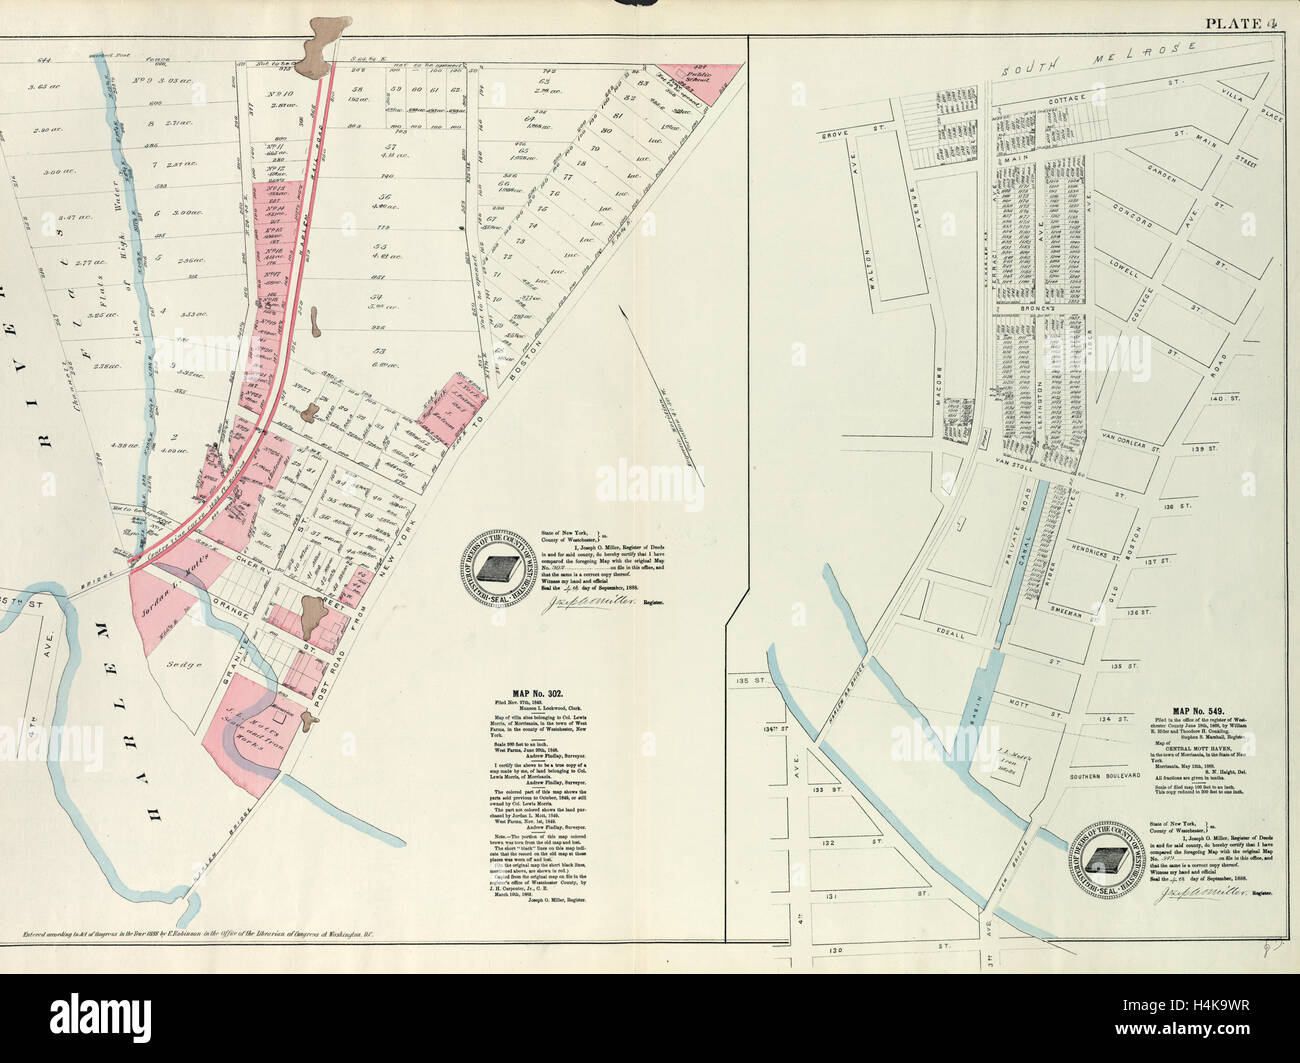 Harlem Nyc Map.Plate 4 Map No 302 Bounded By Harlem River 149th Street And Post